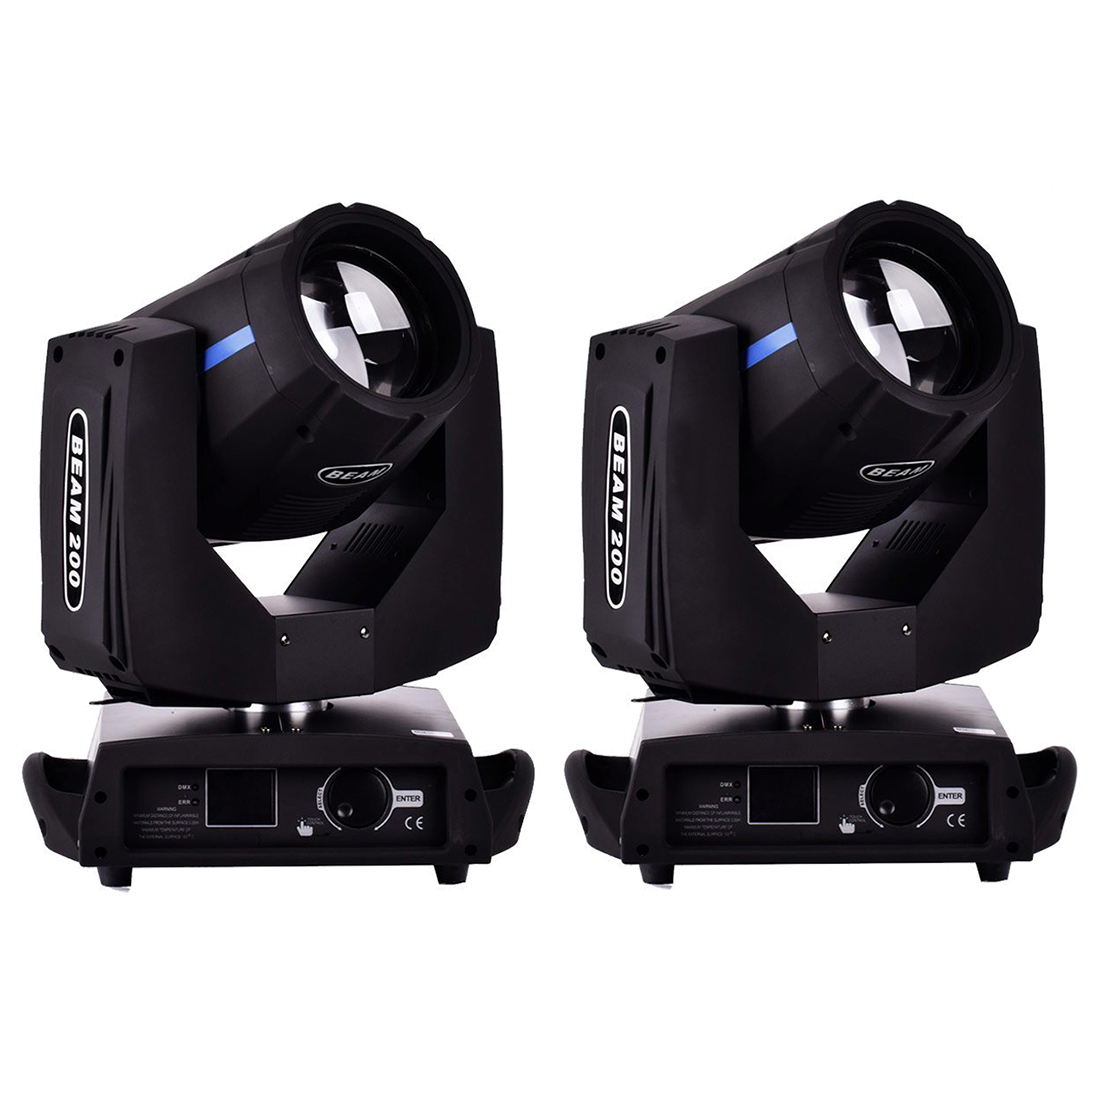 Brand New 2pcs 200W DMX512 16CH LED Moving Head LightBrand New 2pcs 200W DMX512 16CH LED Moving Head Light